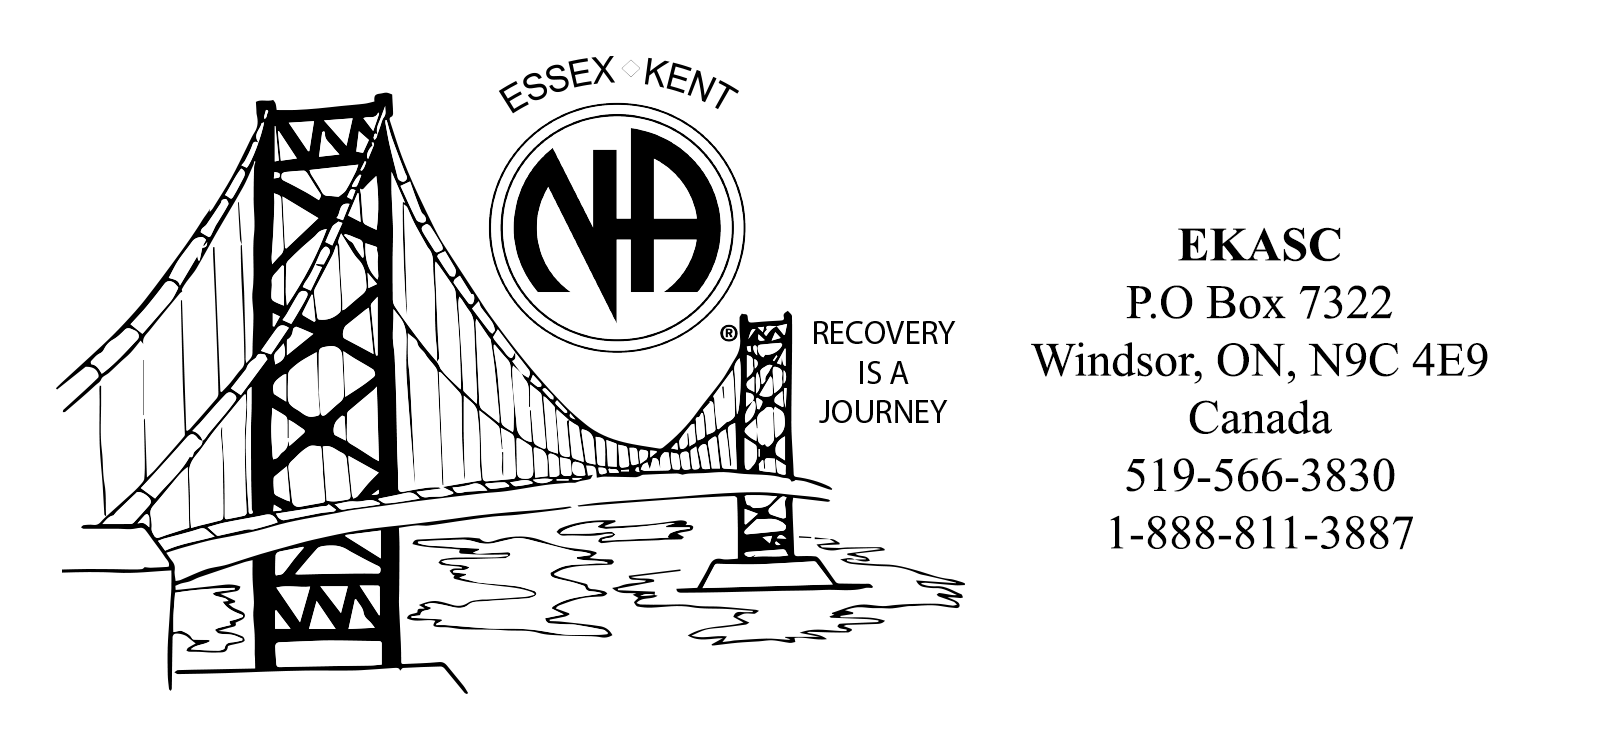 Essex-Kent Area of Narcotics Anonymous